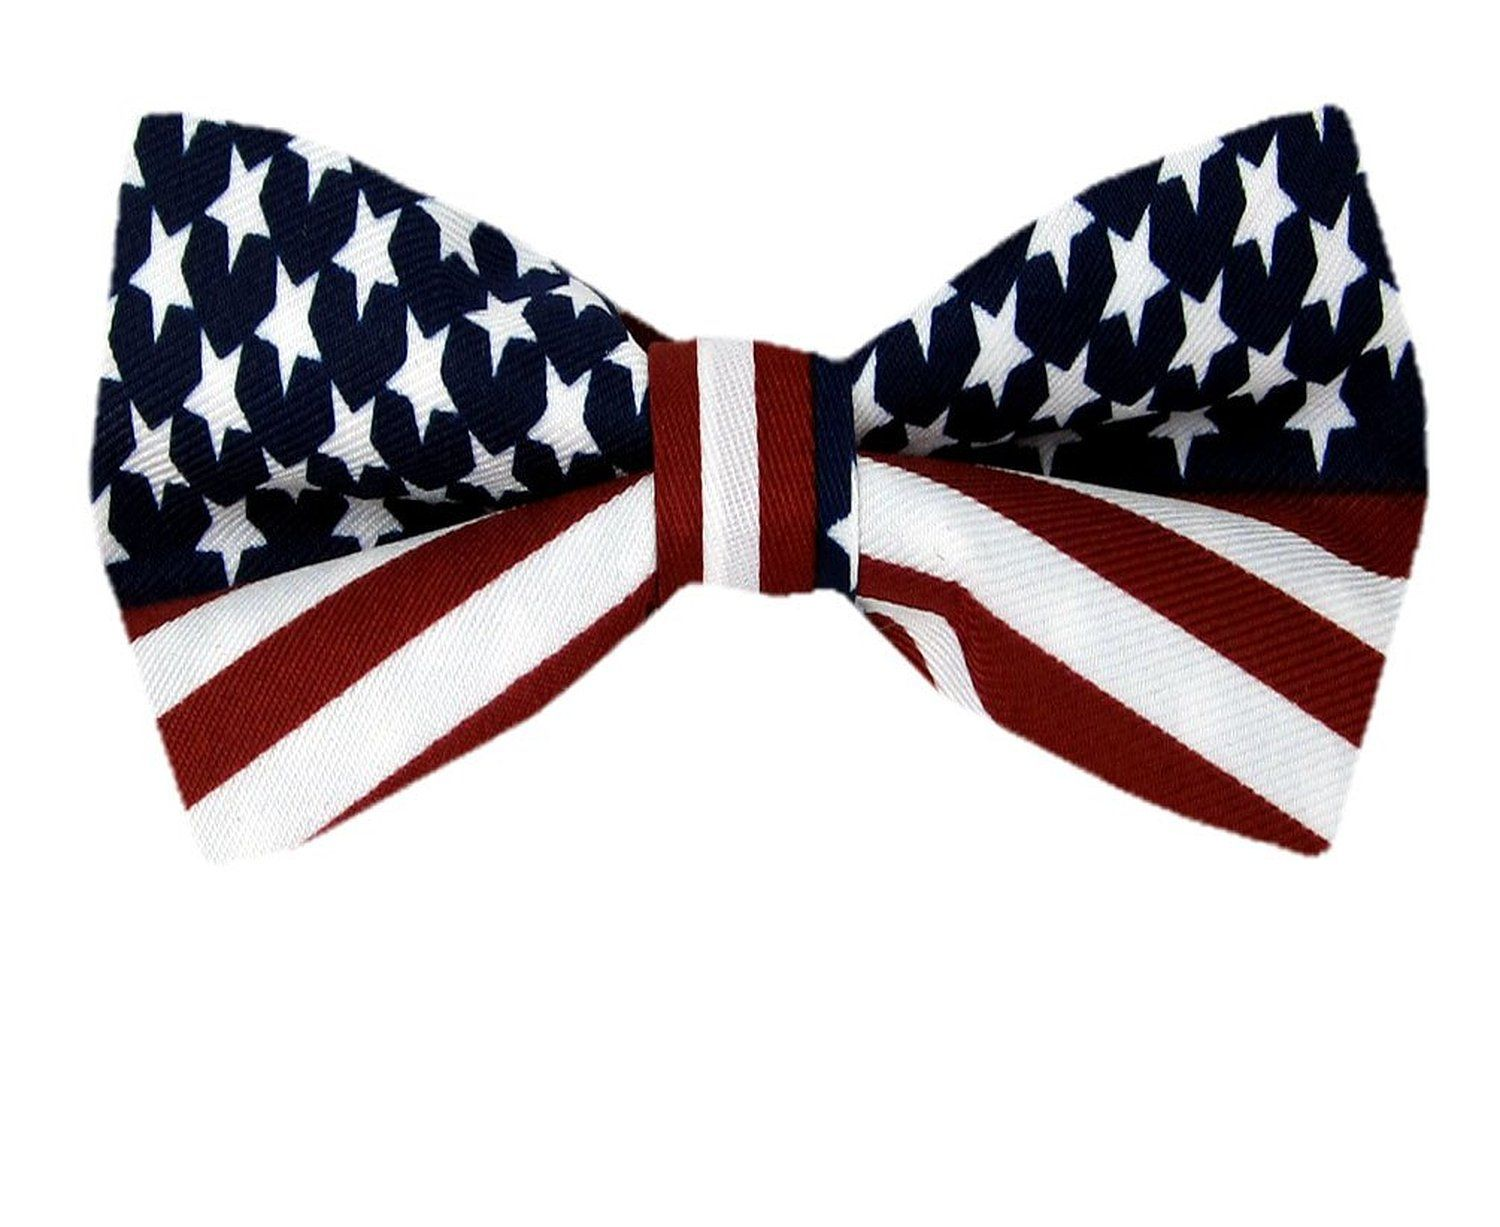 Red gift bows border with clipping path for easy background removing - American Flag Men S Bow Tie Usa Patriotic Bowtie At Amazon Men S